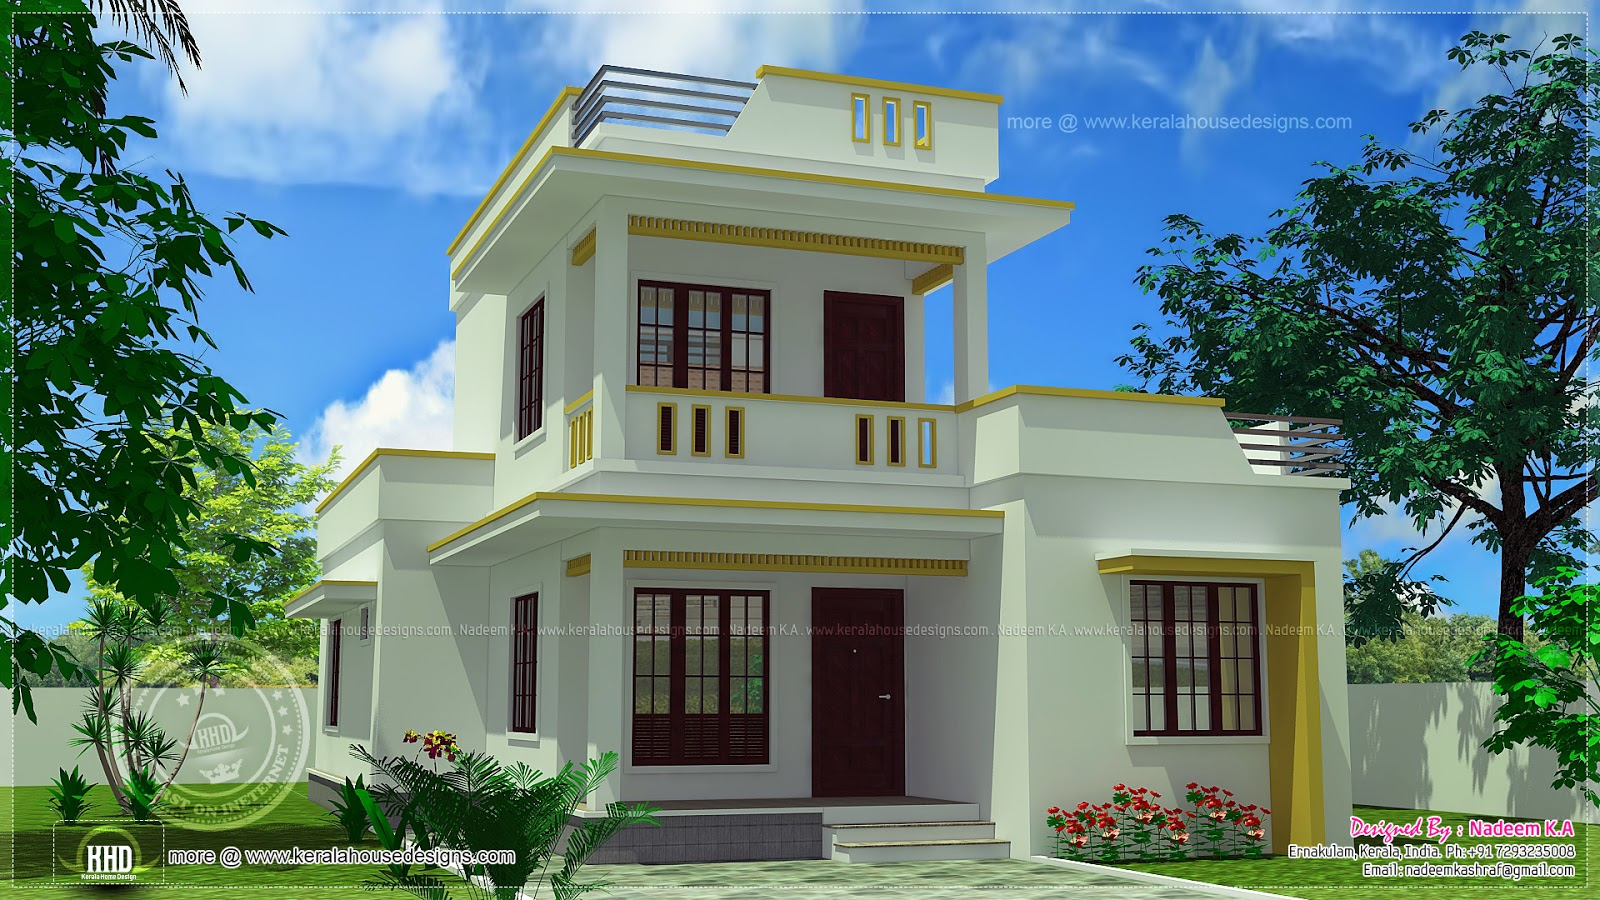 August 2013 kerala home design and floor plans for House designers house plans